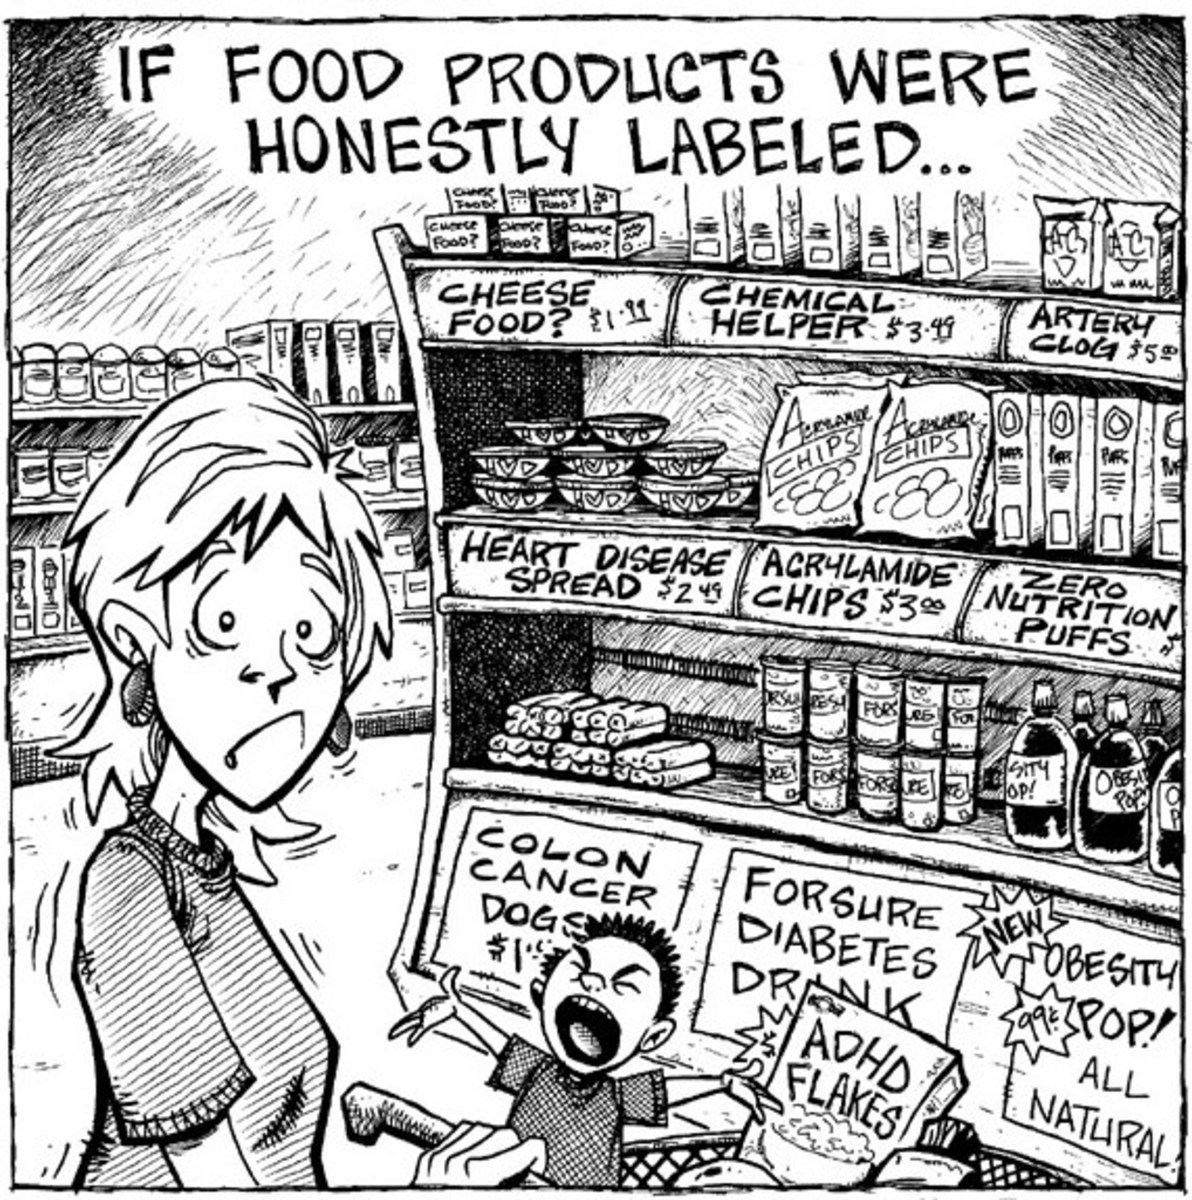 Misleading Food Labels: Read Them Carefully